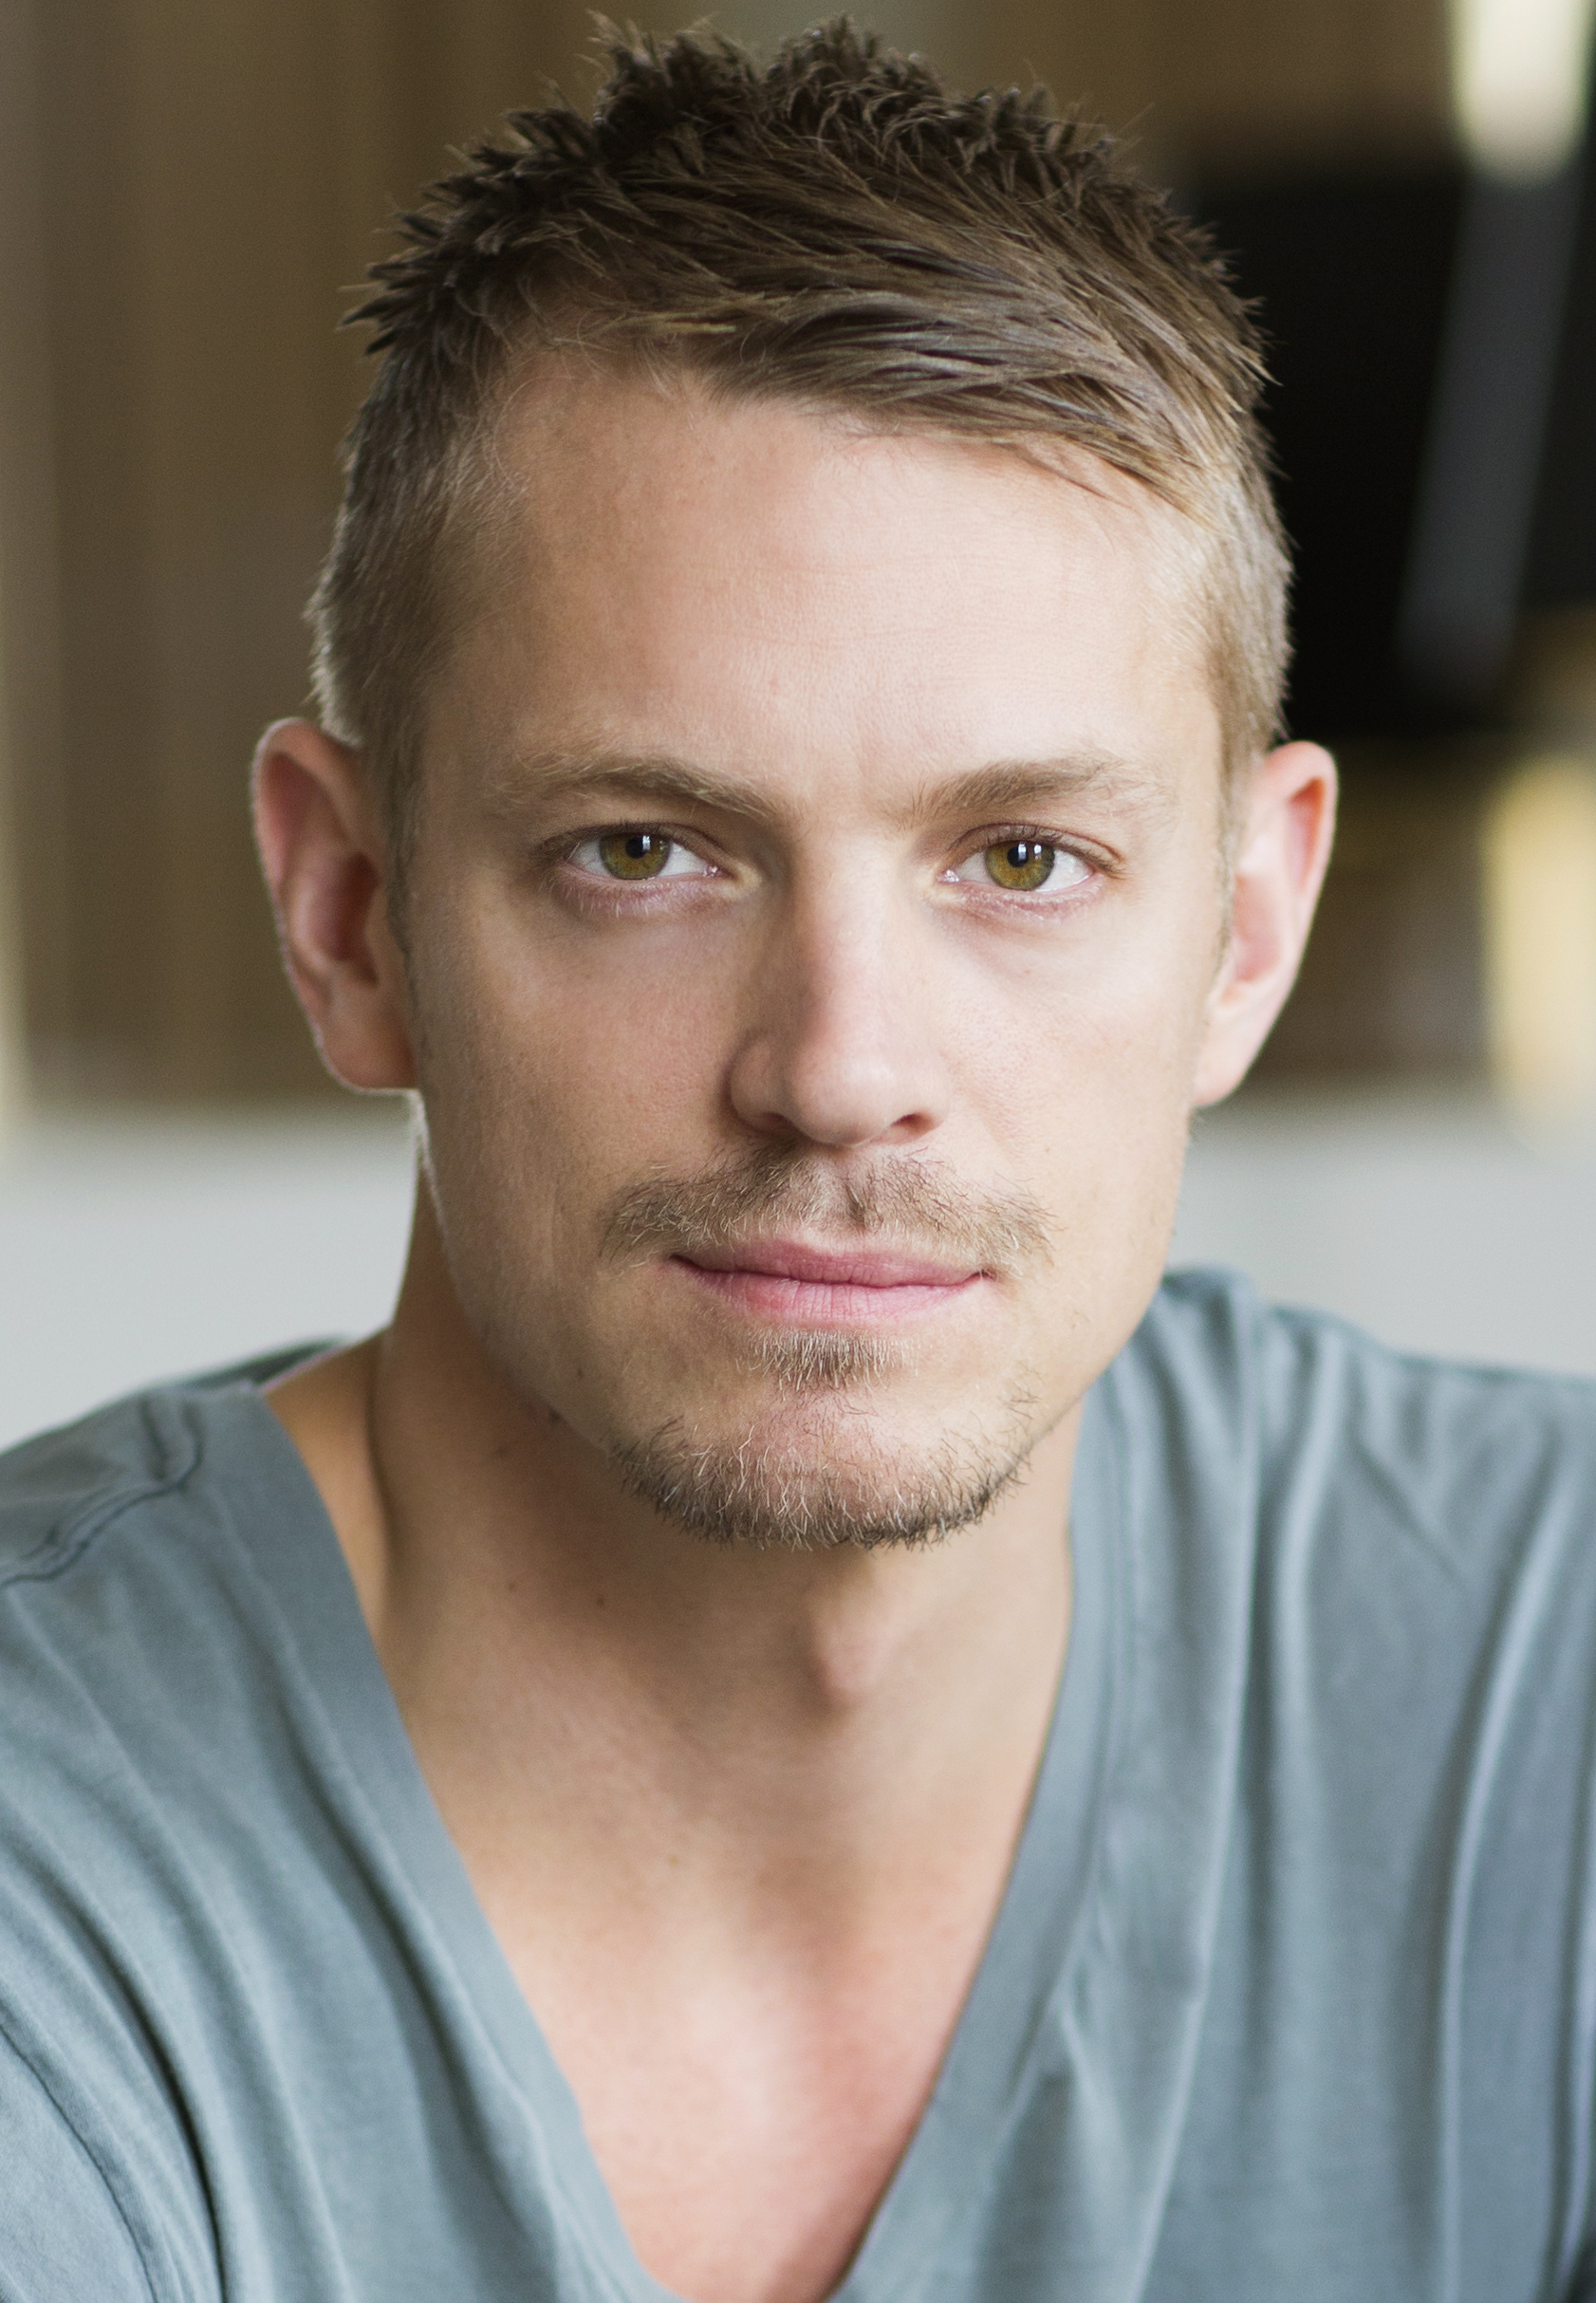 https://upload.wikimedia.org/wikipedia/commons/0/0a/Joel_Kinnaman_2014_%28cropped%29.jpg